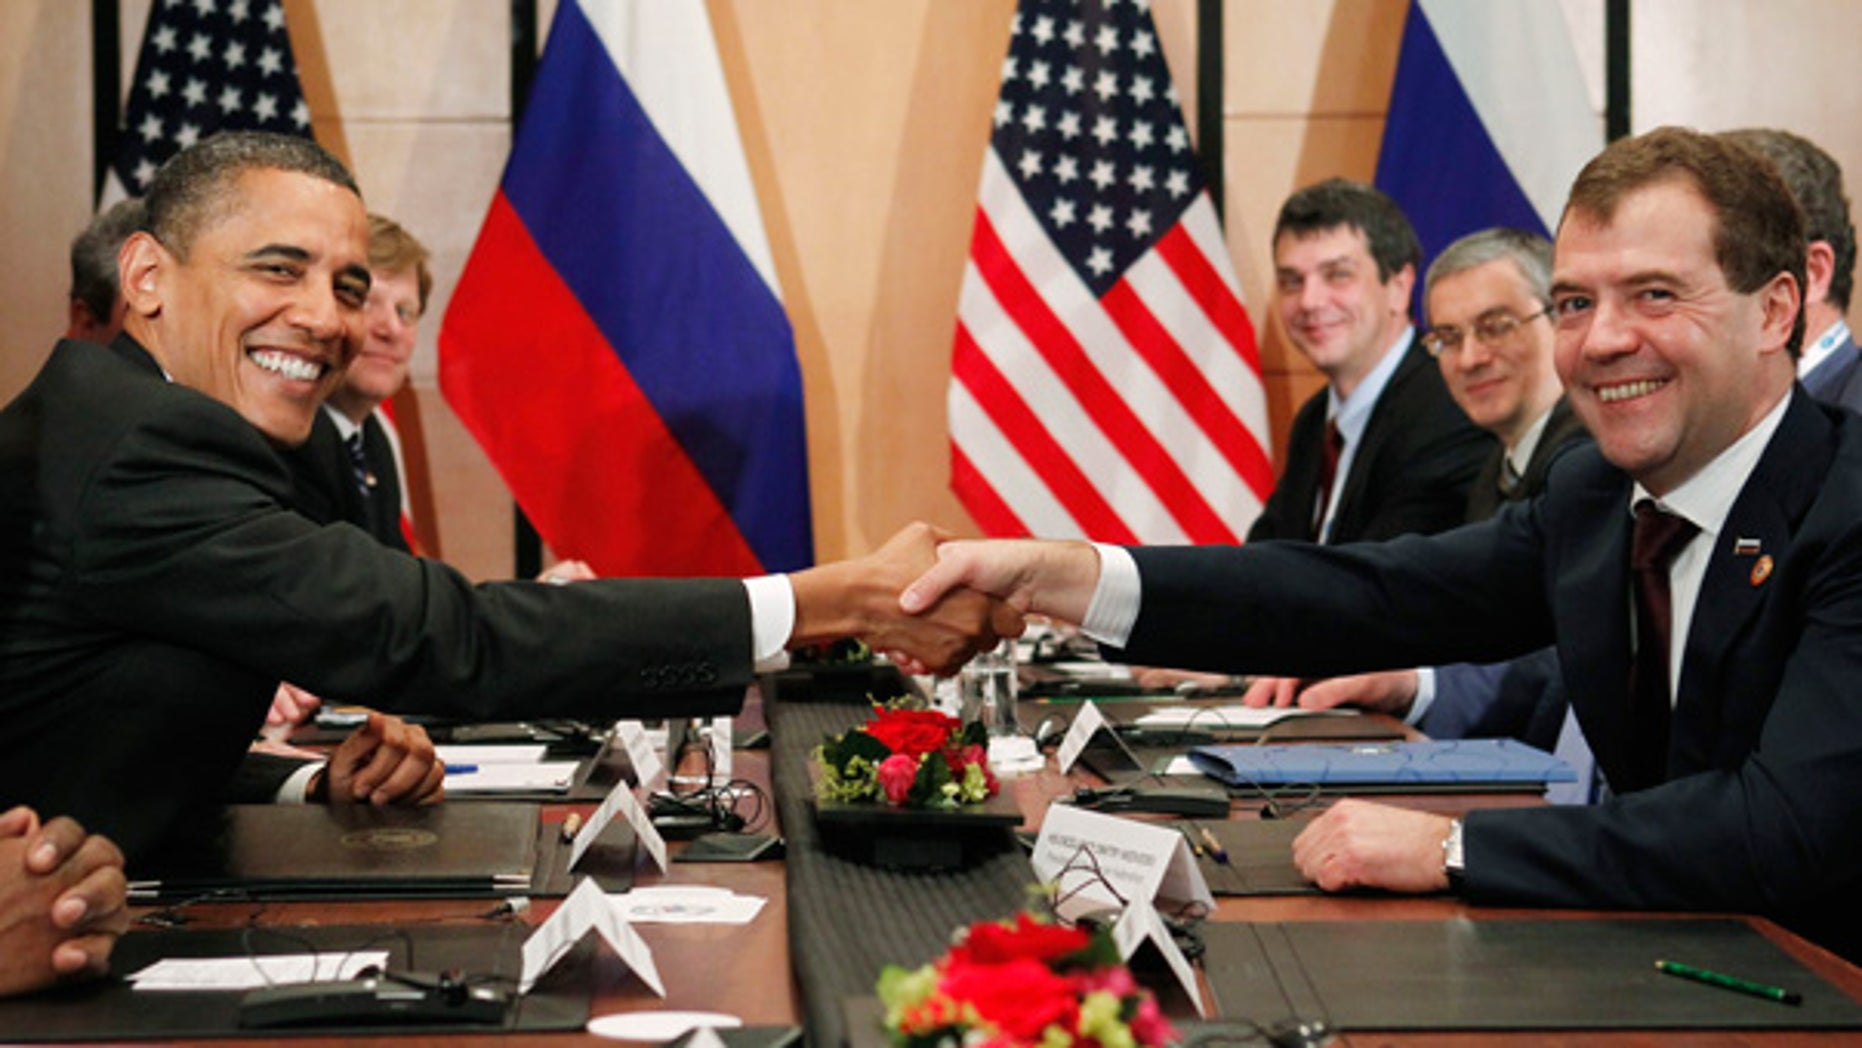 Nov. 14: President Obama shakes hands with President Dmitry Medvedev of Russia on the sidelines of the APEC summit in Yokohama, Japan.